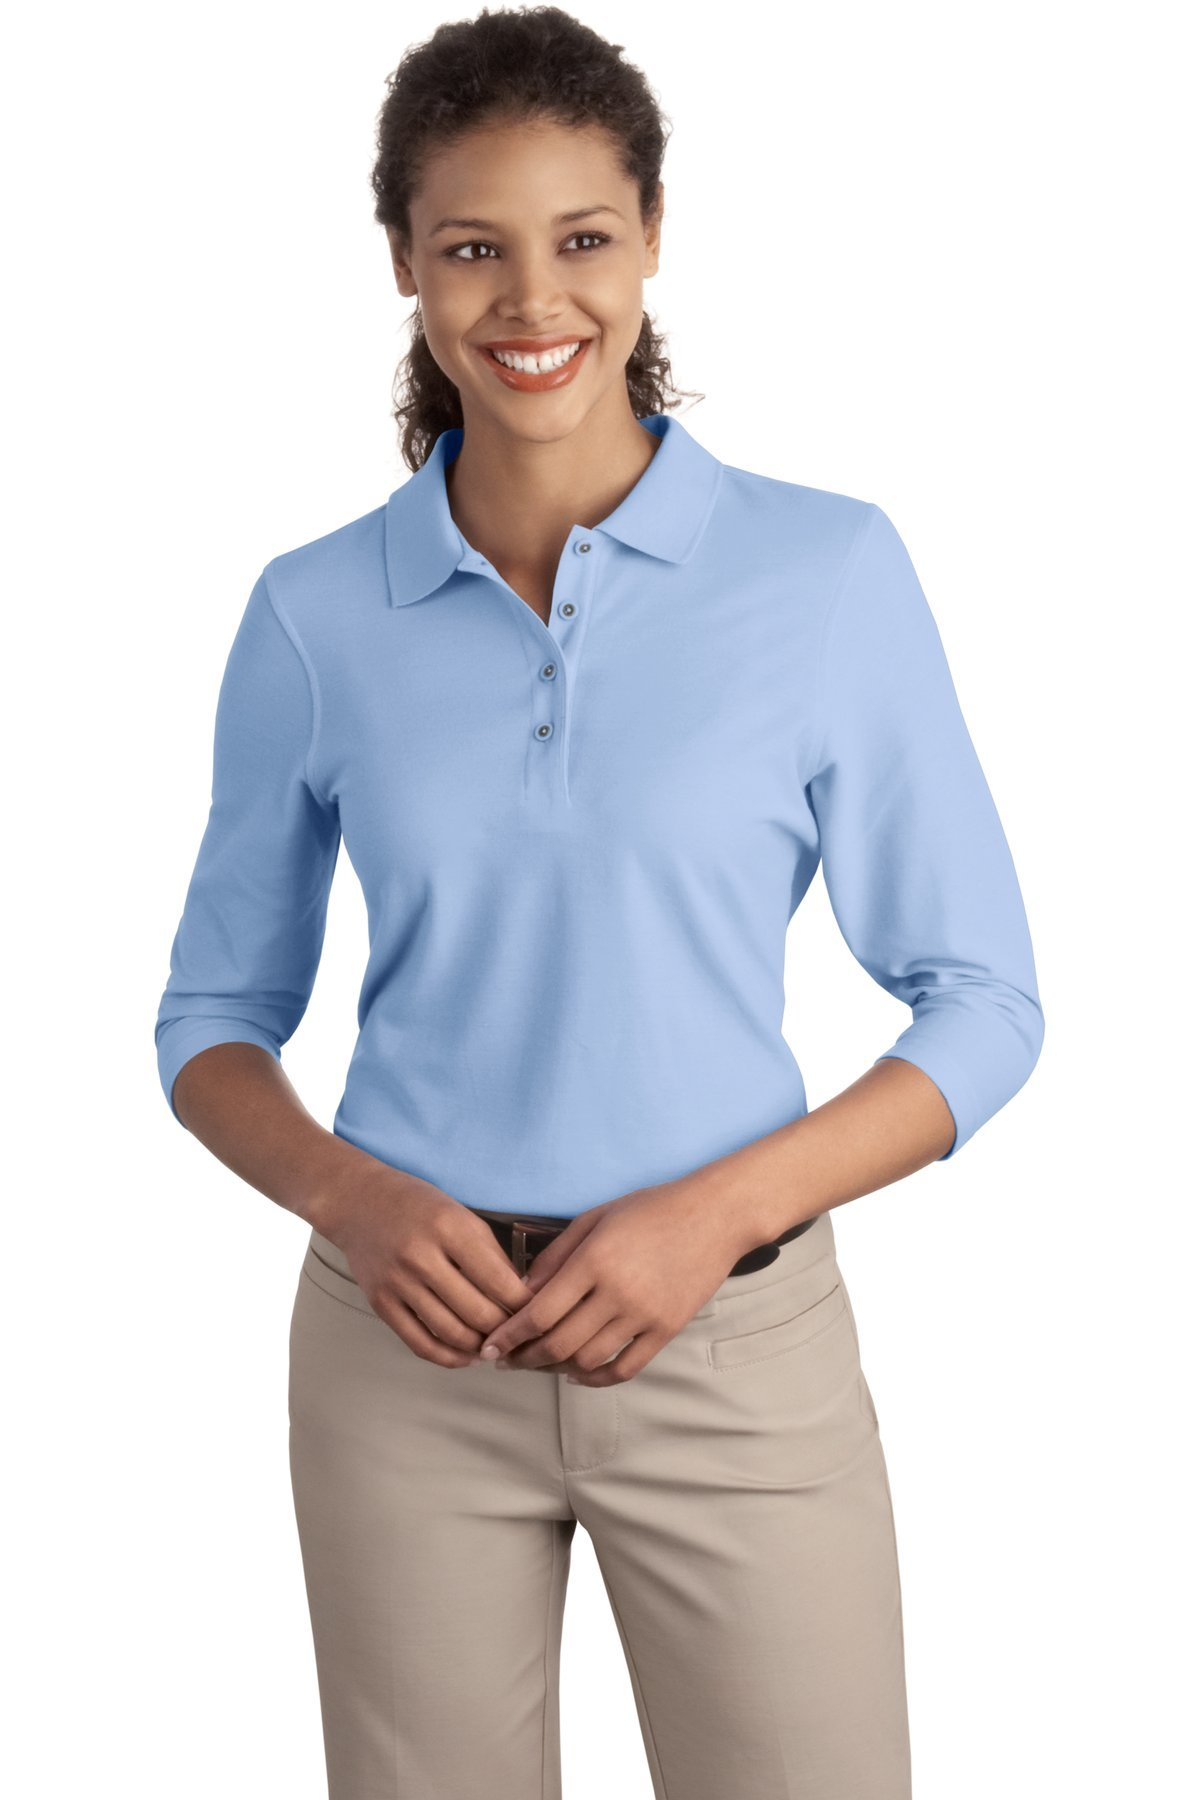 Port Authority Women's Silk Touch 3/4 Sleeve Polo 4XL Light Blue by Port Authority